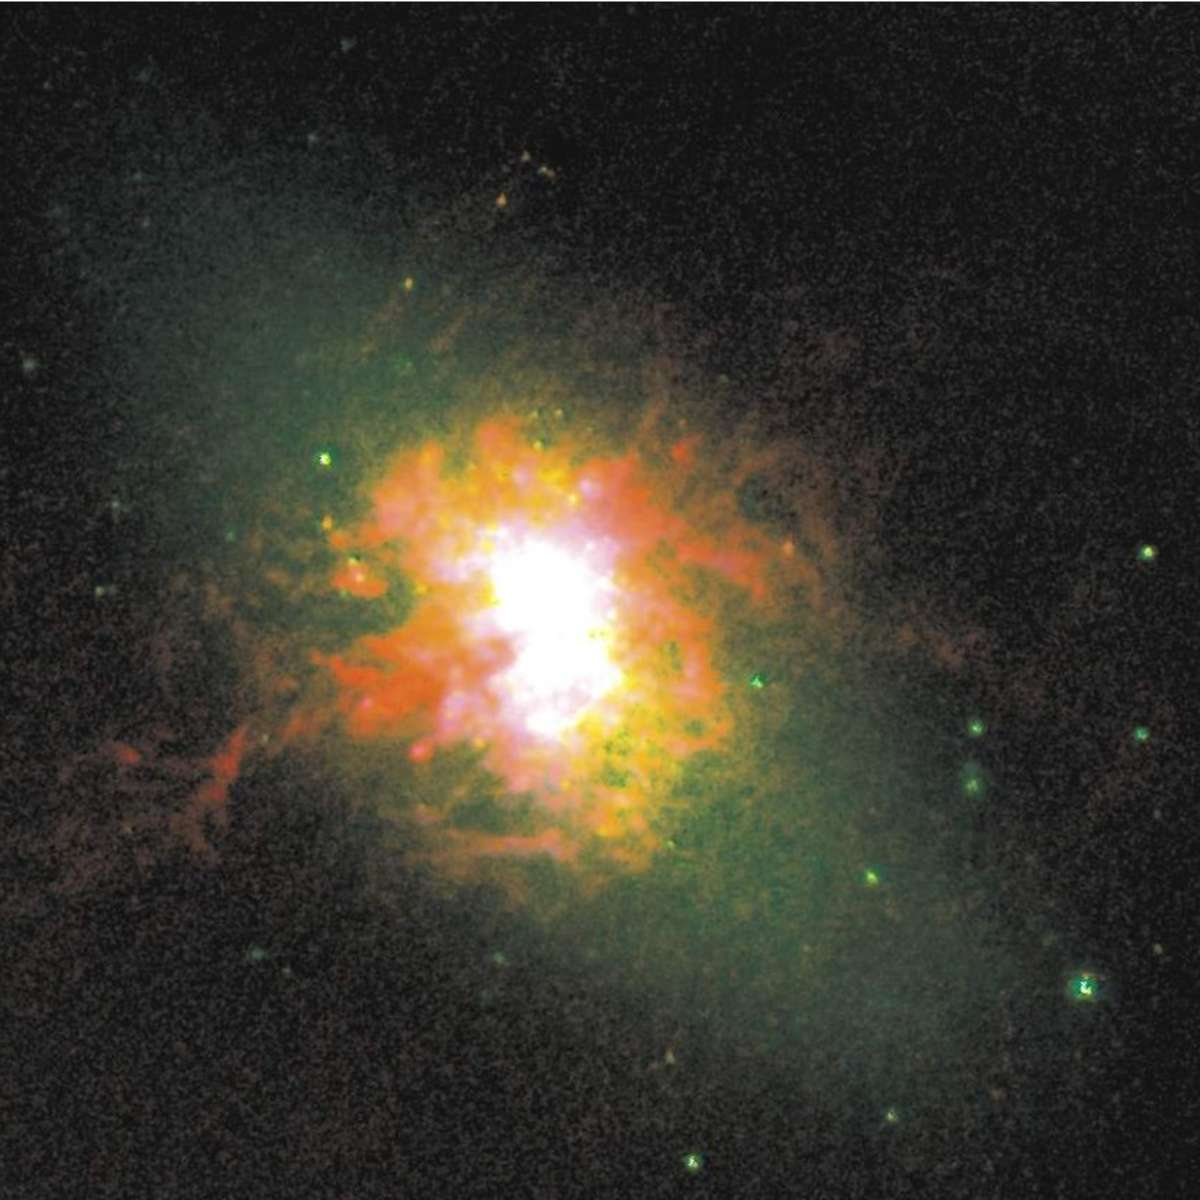 NGC 5253, a starburst dwarf galaxy. Starlight is shown in green, yellow is warm gas, and red is gas being blasted by all the young hot stars in the galaxy. Credit: Jordan Zastrow